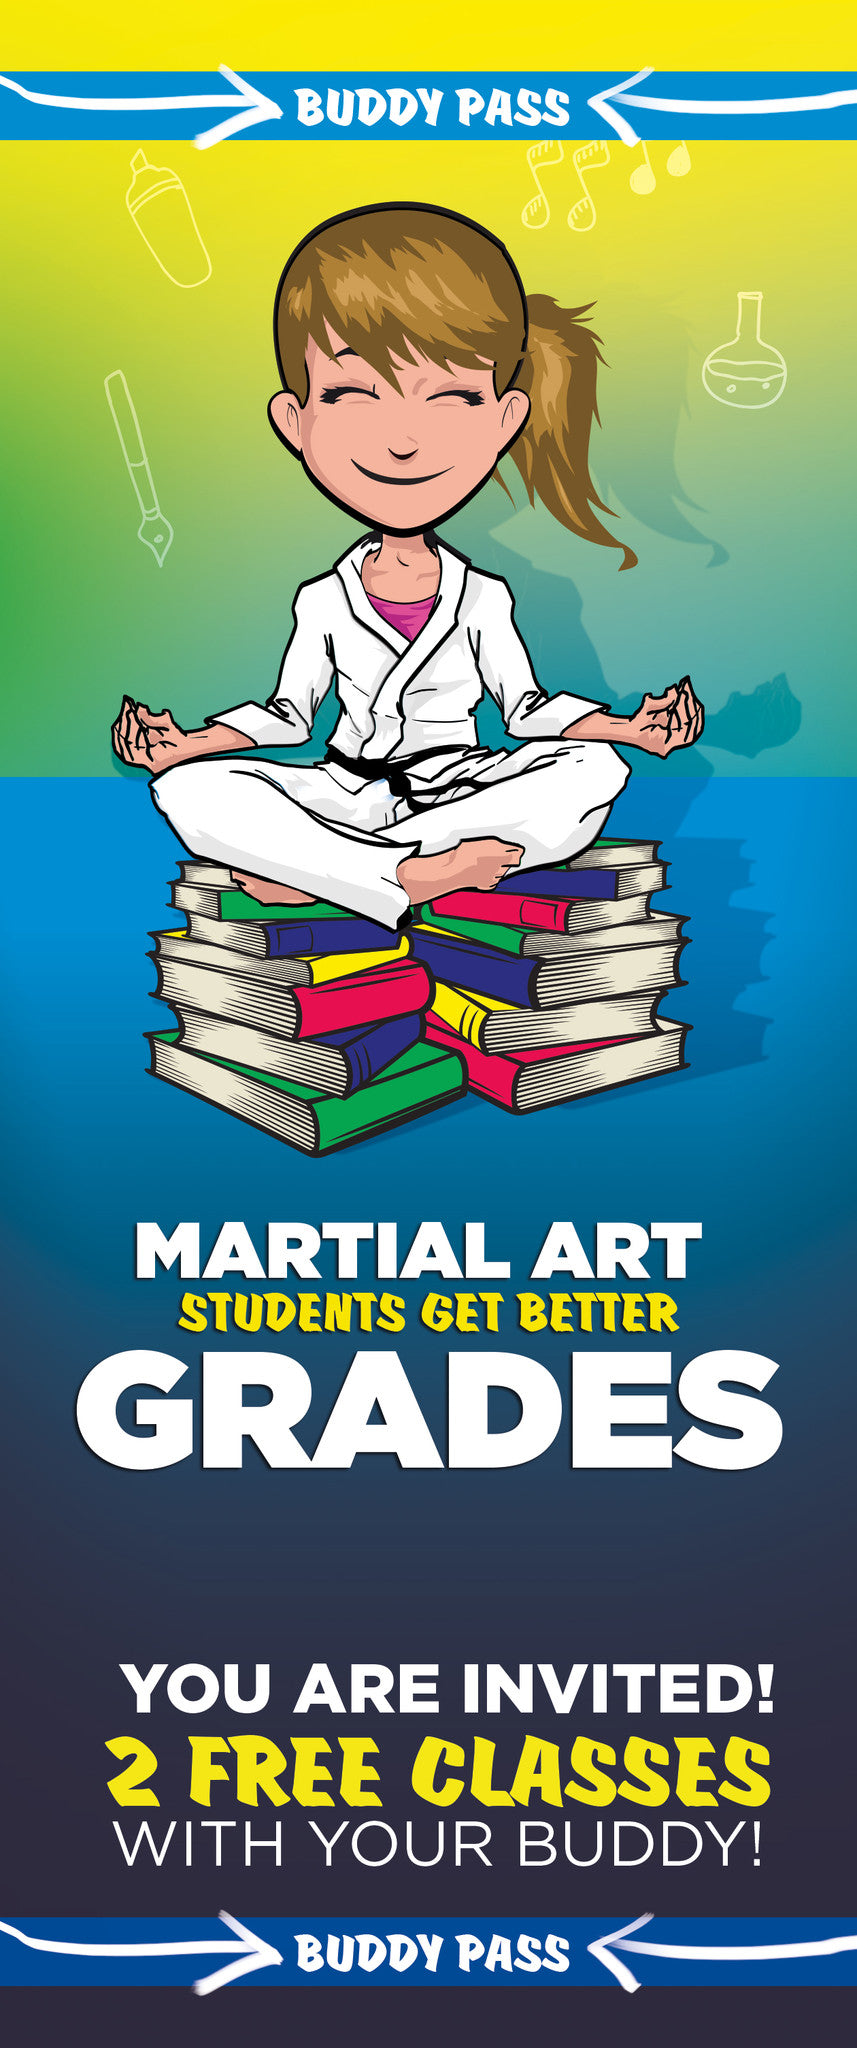 buddy pass back to school martial arts students get better grades buddy pass back to school martial arts students get better grades